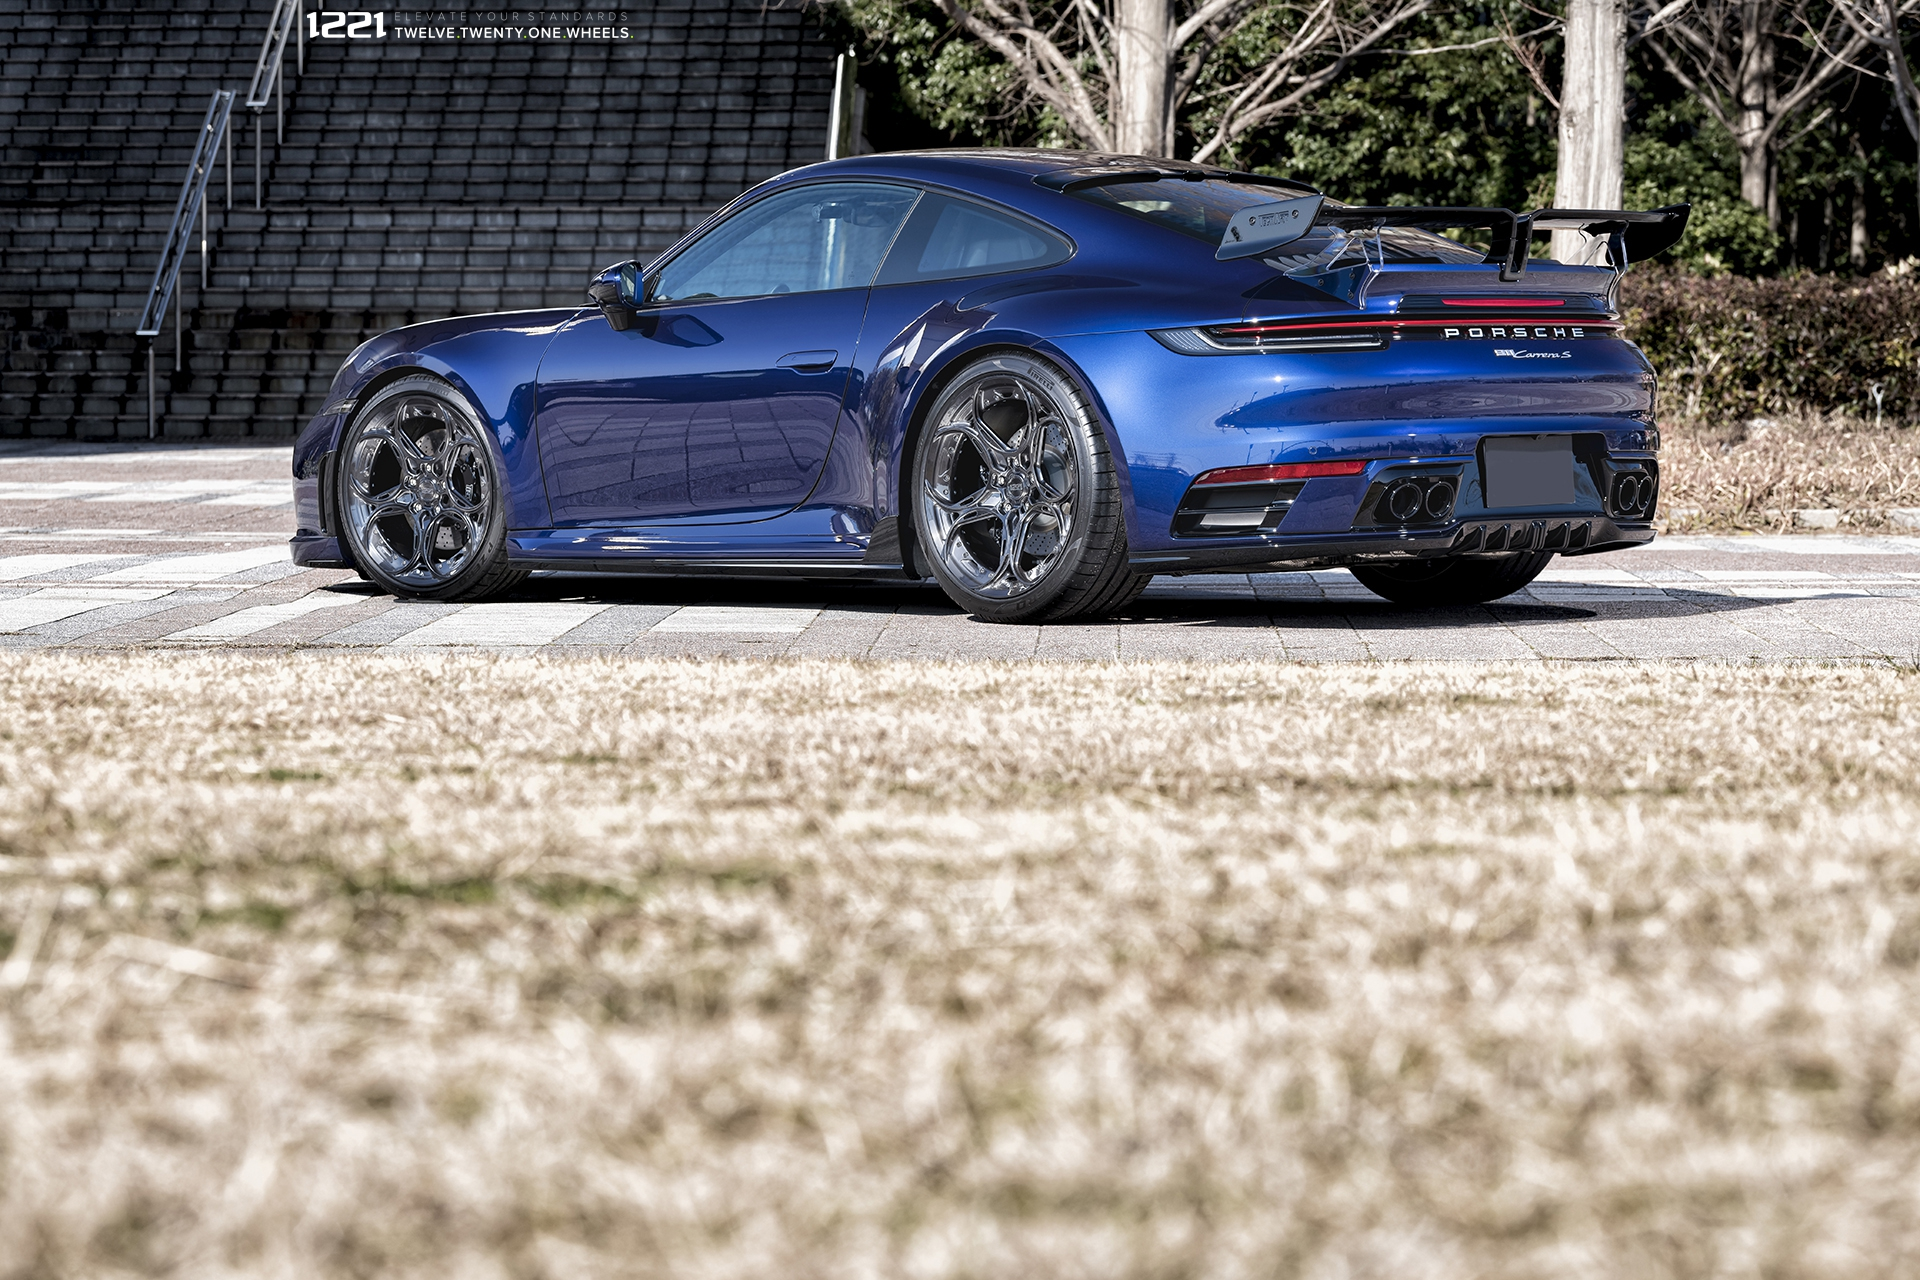 Porsche 992 Carrera S Forged Wheels